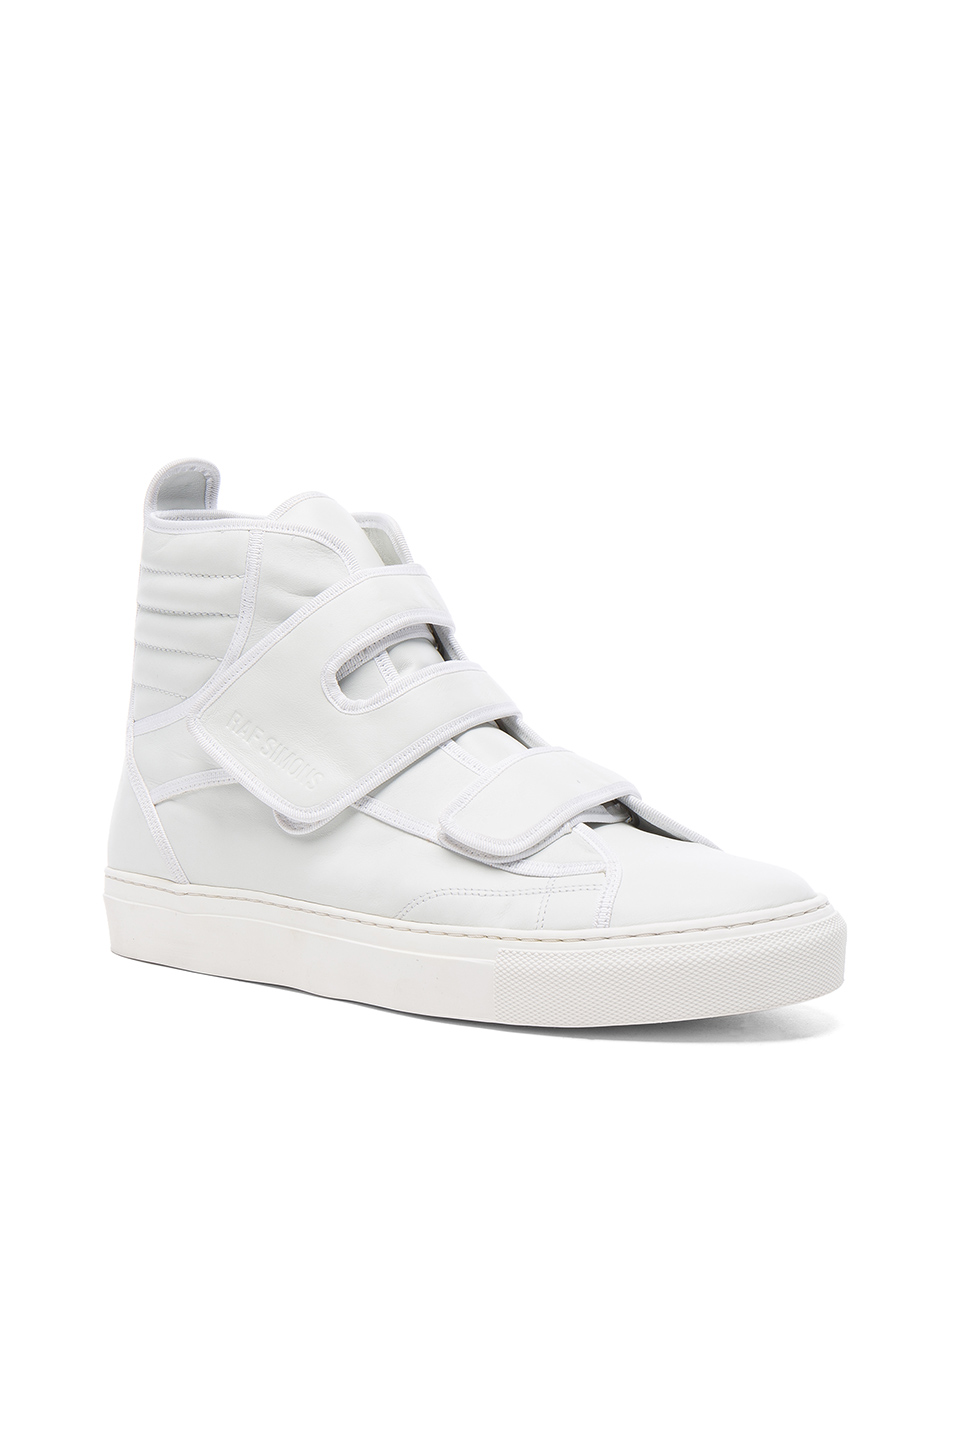 Raf Simons High Top Velcro Sneakers in White